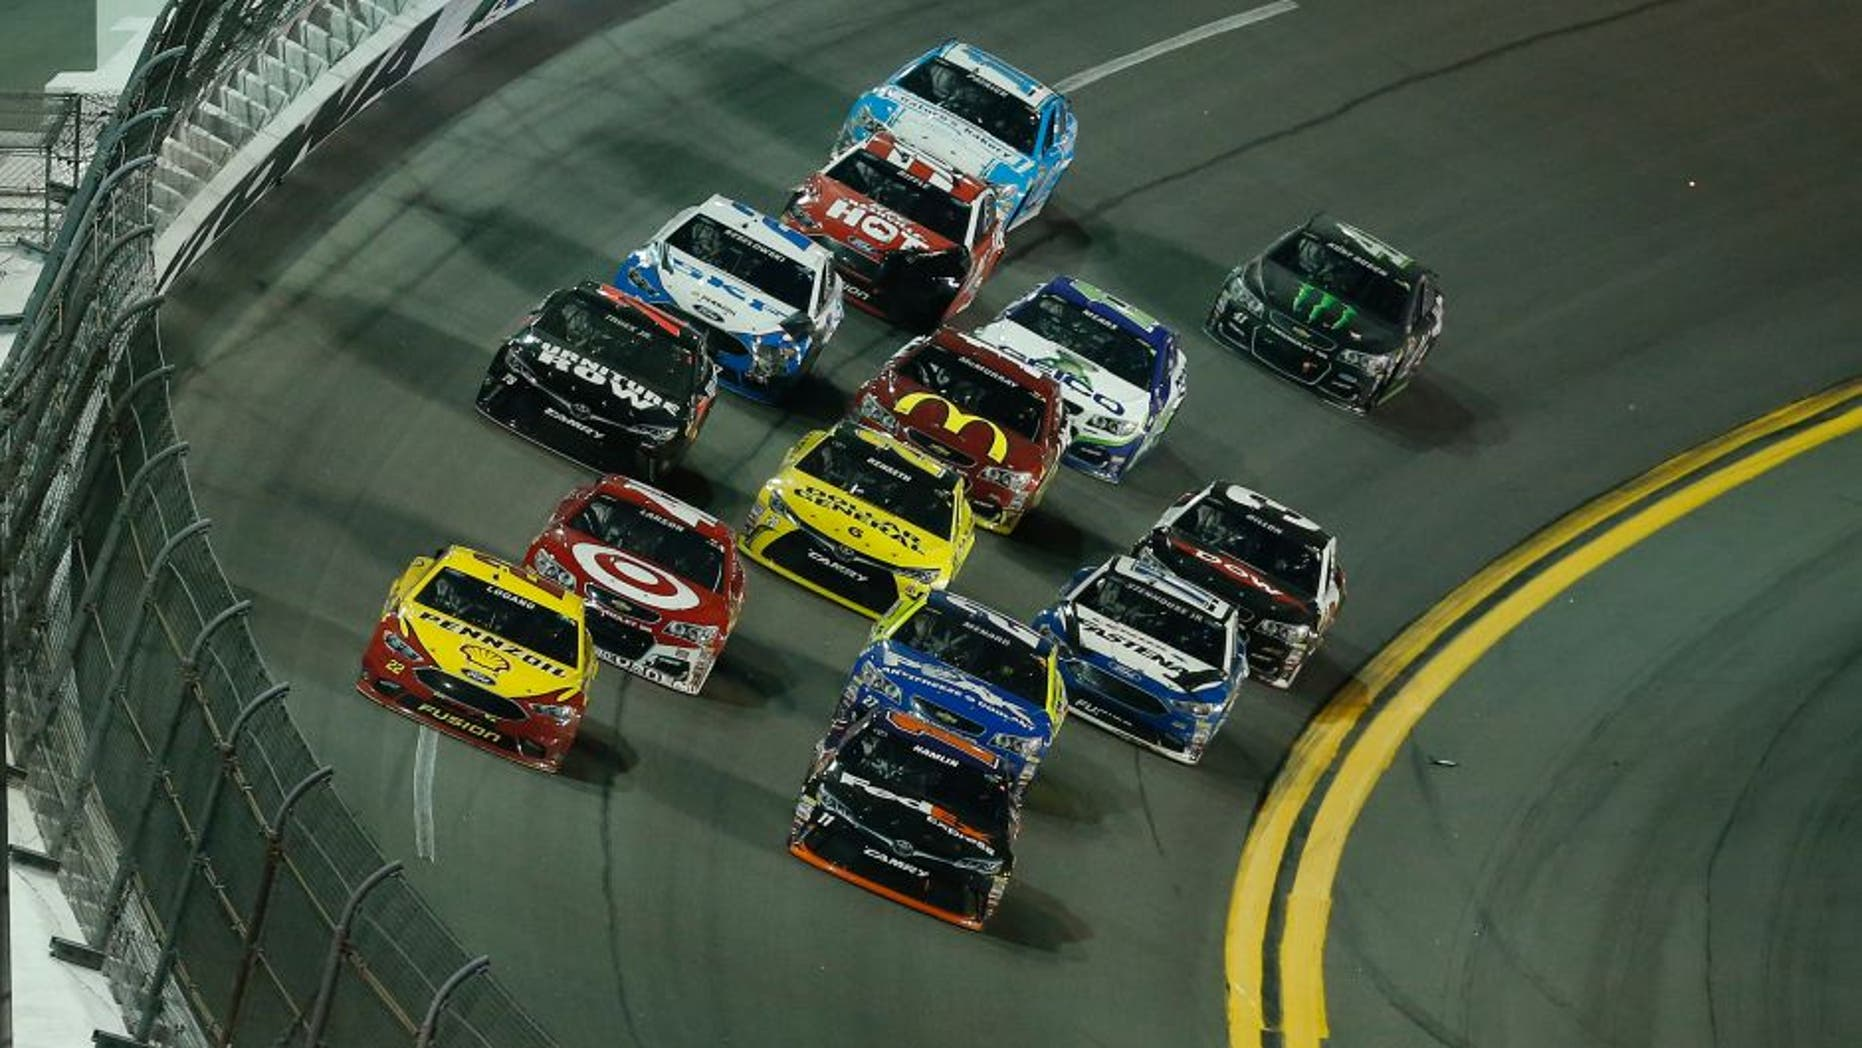 DAYTONA BEACH, FL - FEBRUARY 13: Denny Hamlin, driver of the #11 FedEx Express Toyota, and Joey Logano, driver of the #22 Shell Pennzoil Ford, lead a pack of cars during the NASCAR Sprint Cup Series Sprint Unlimited at Daytona International Speedway on February 13, 2016 in Daytona Beach, Florida. (Photo by Matt Sullivan/Getty Images)